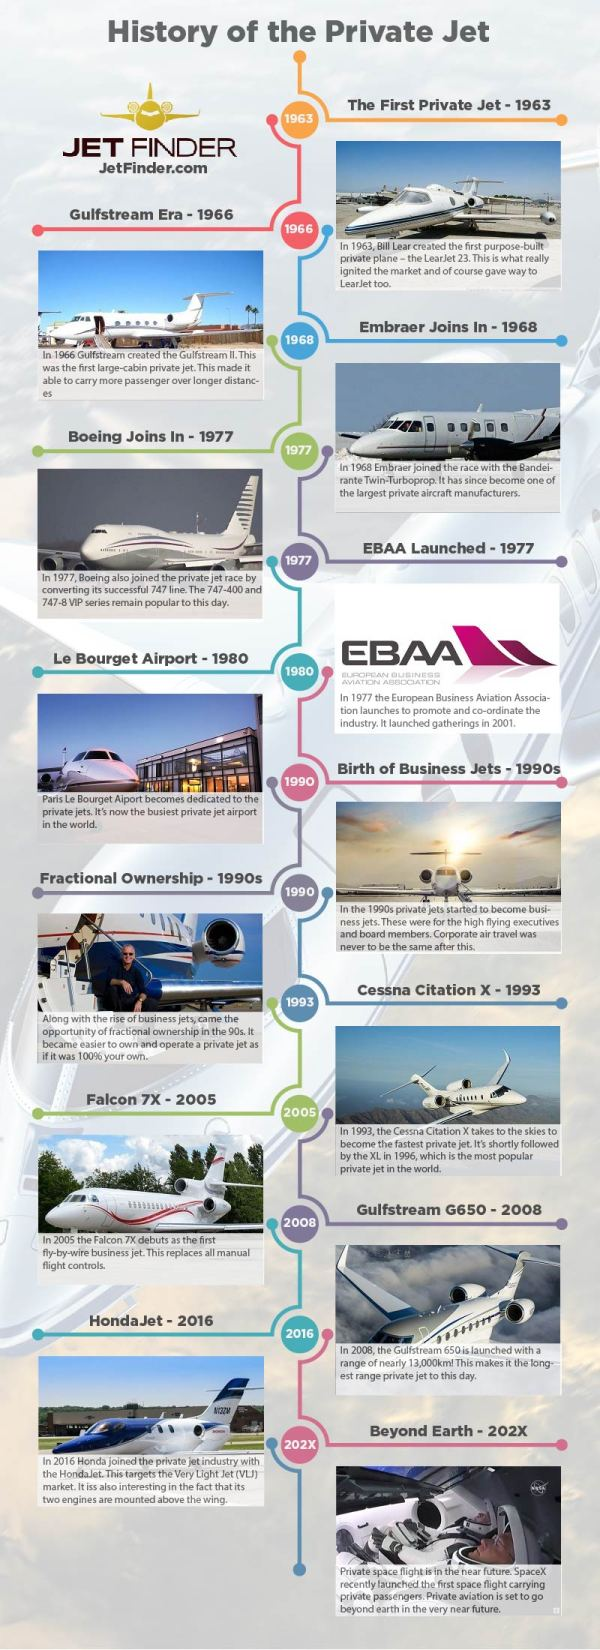 History-of-the-Private-Jet-Infographic